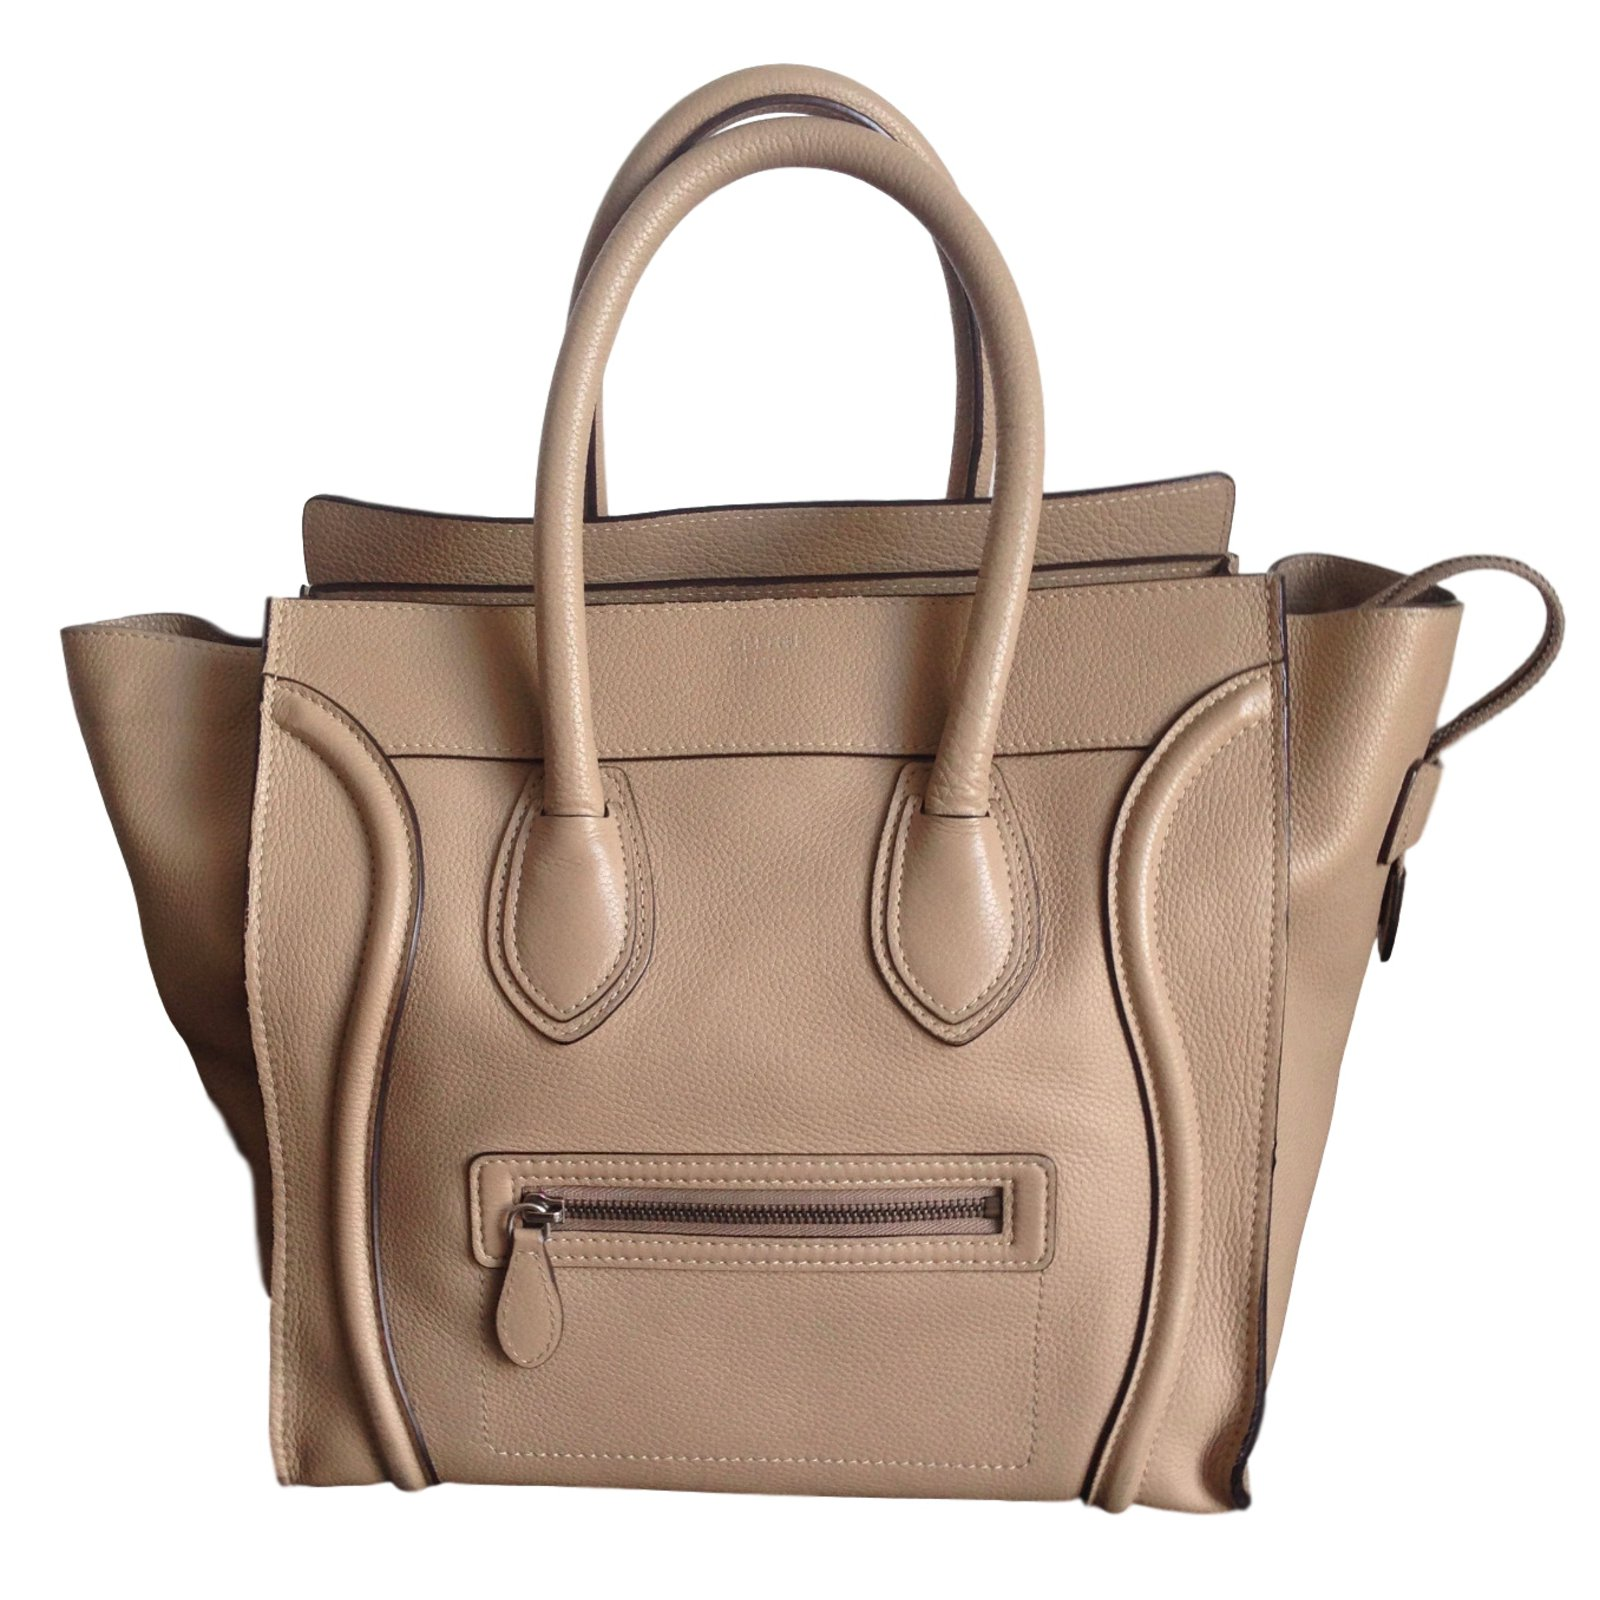 celine bag prices - celine sac femme cuir, acquistare Celine